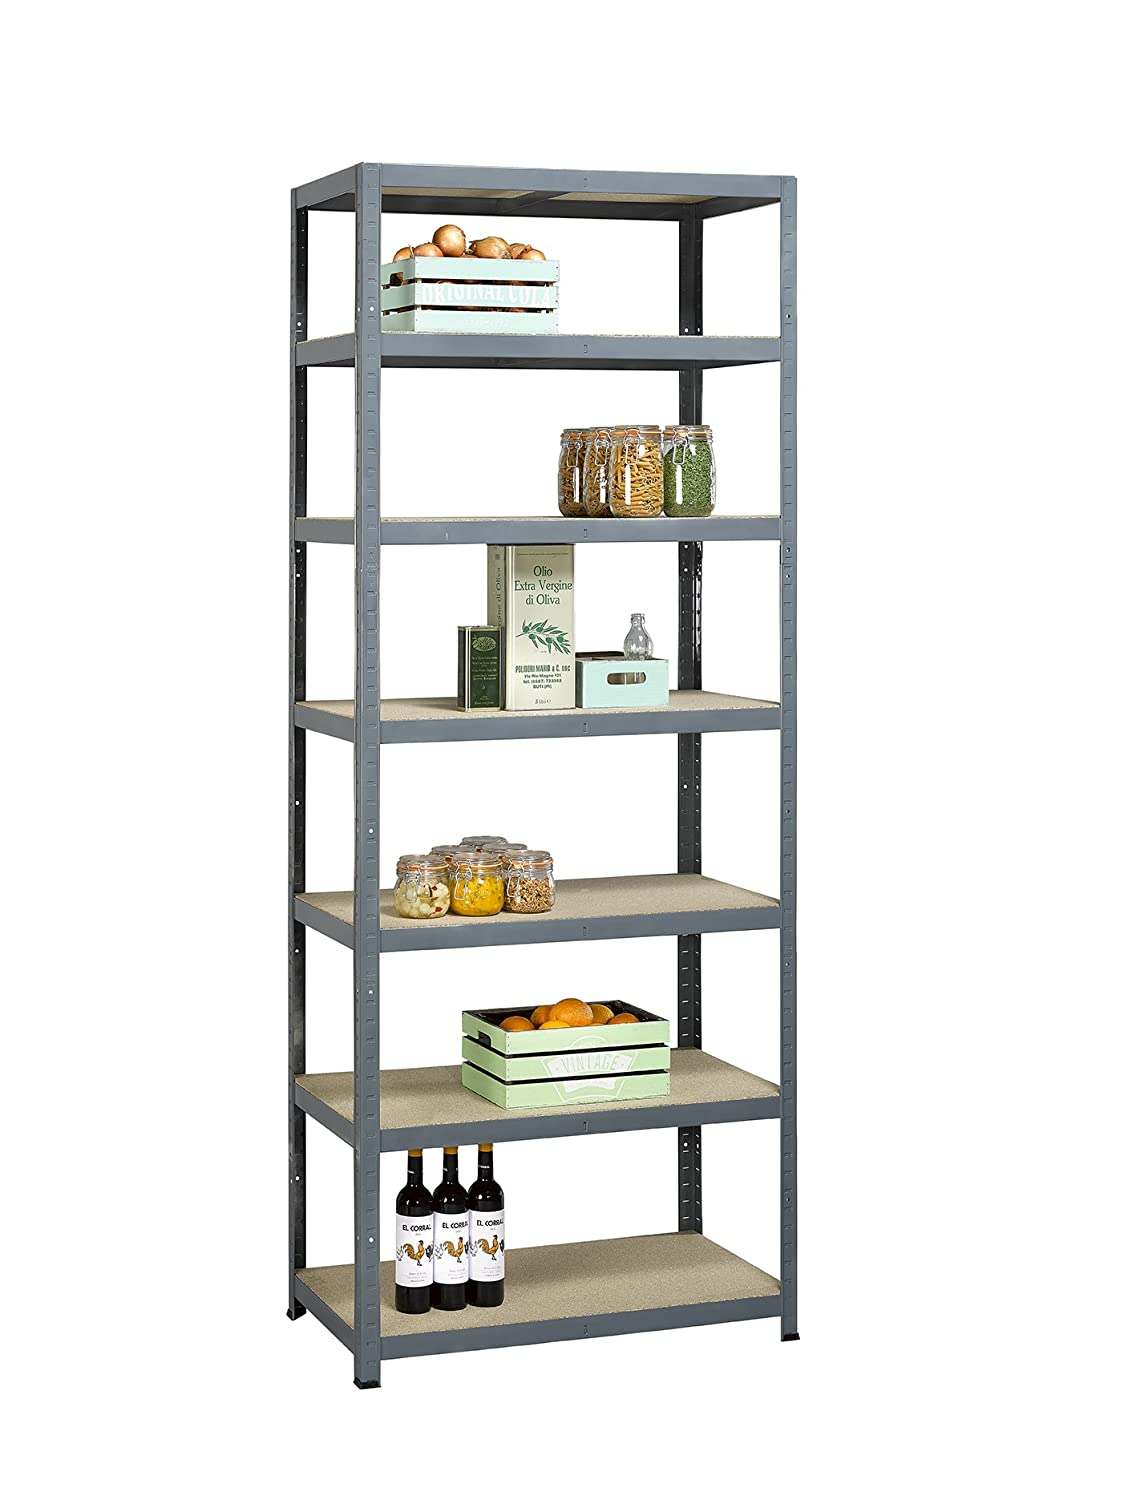 Industrial shelving 40cm height including bolt anchors Racking and Shelving Column Impact Protector//Corner guard: U-Shape pallet racking steelmade Heavy duty shelving